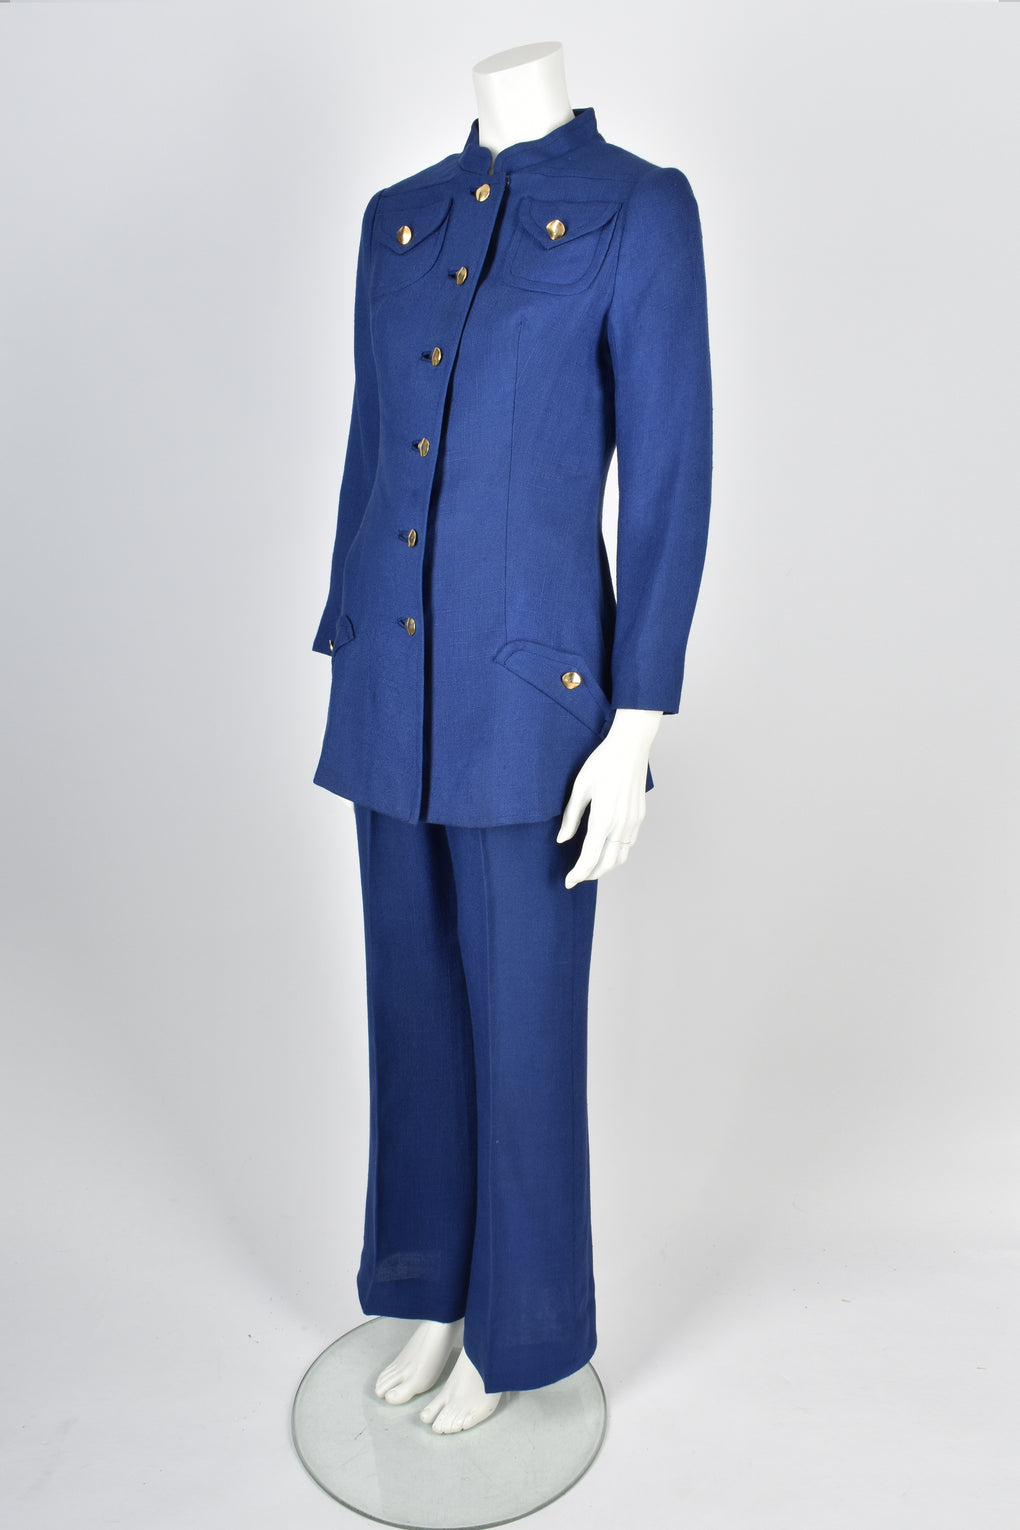 FENWICK 1960s blue trouser suit S-M